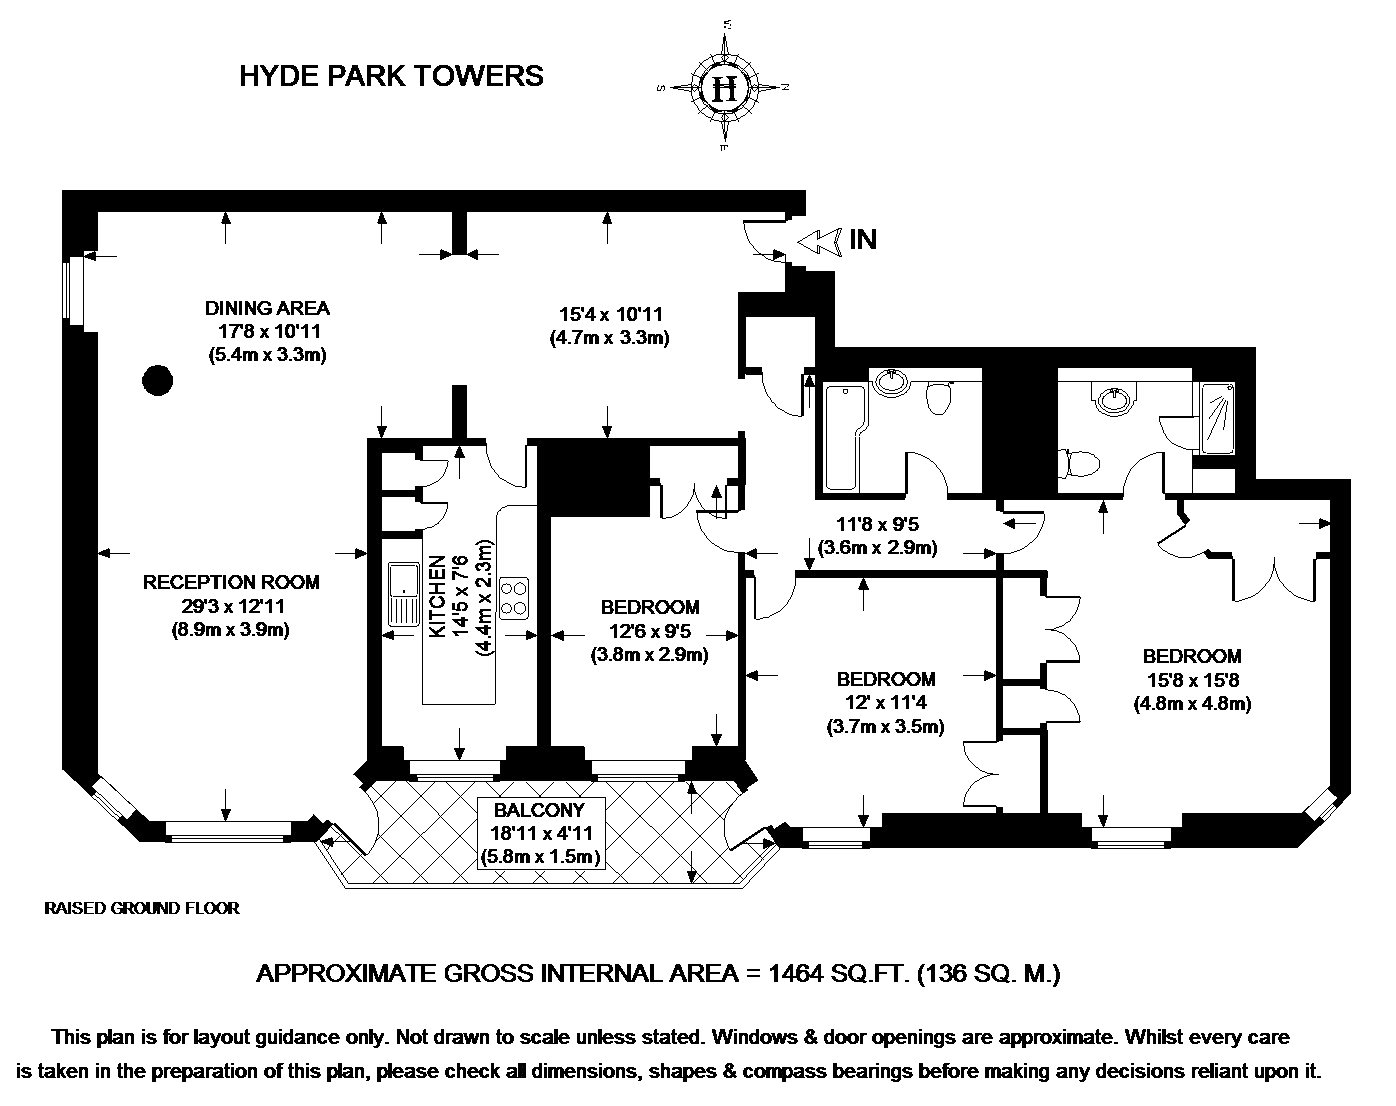 Hyde park towers porchester terrace london w2 3 bedroom for 10 porchester terrace